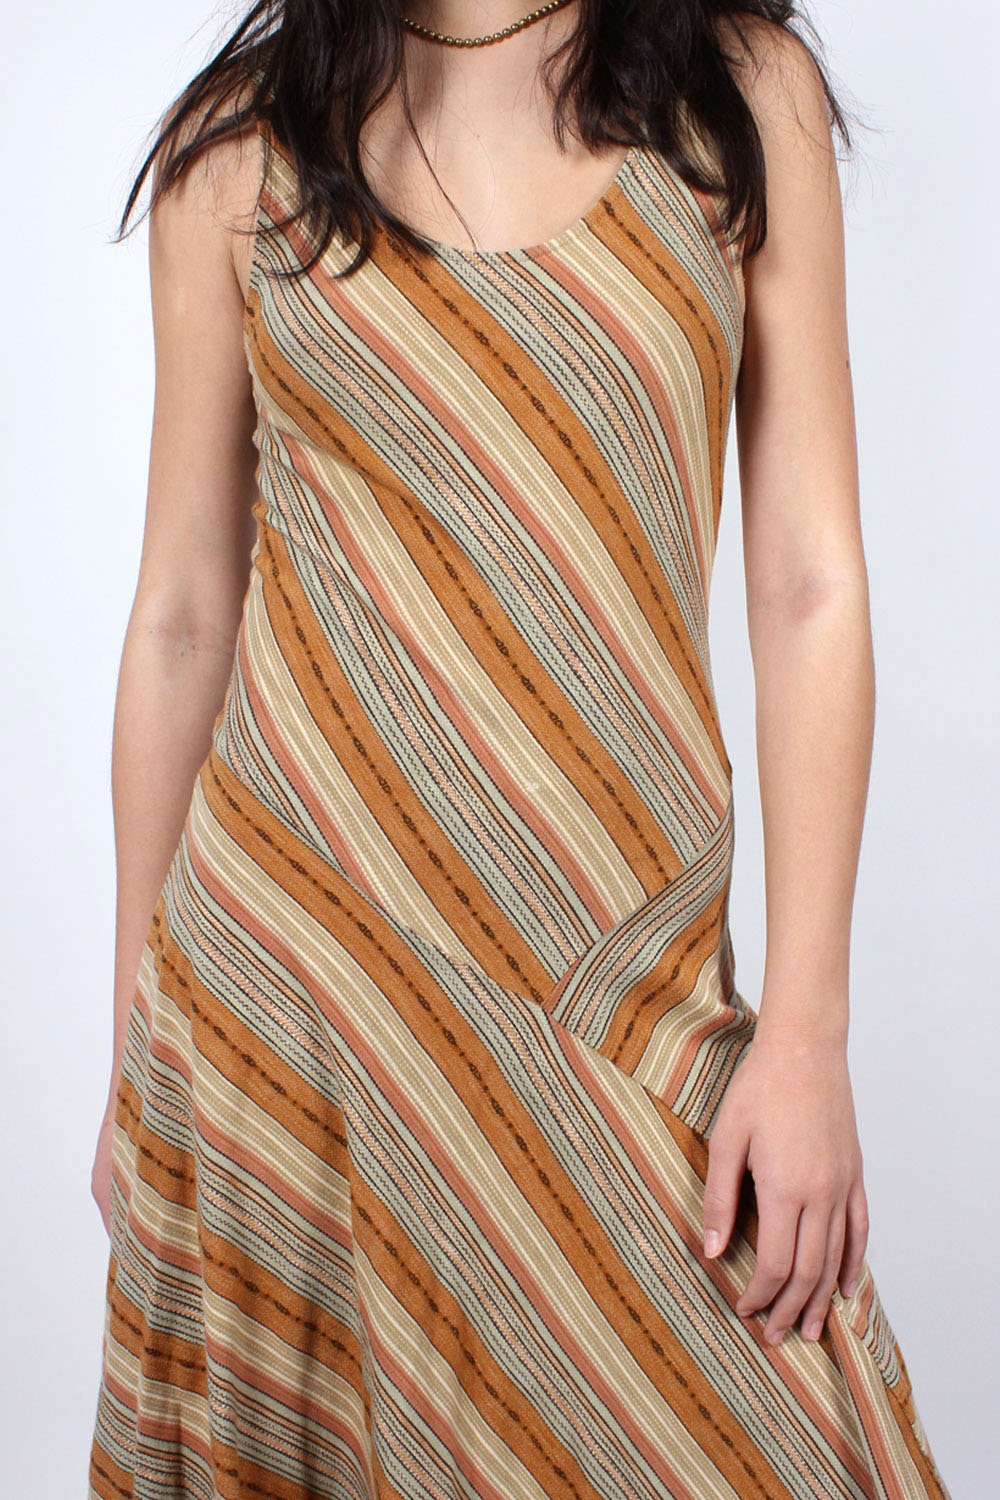 Desert Stripe Flare Dress S